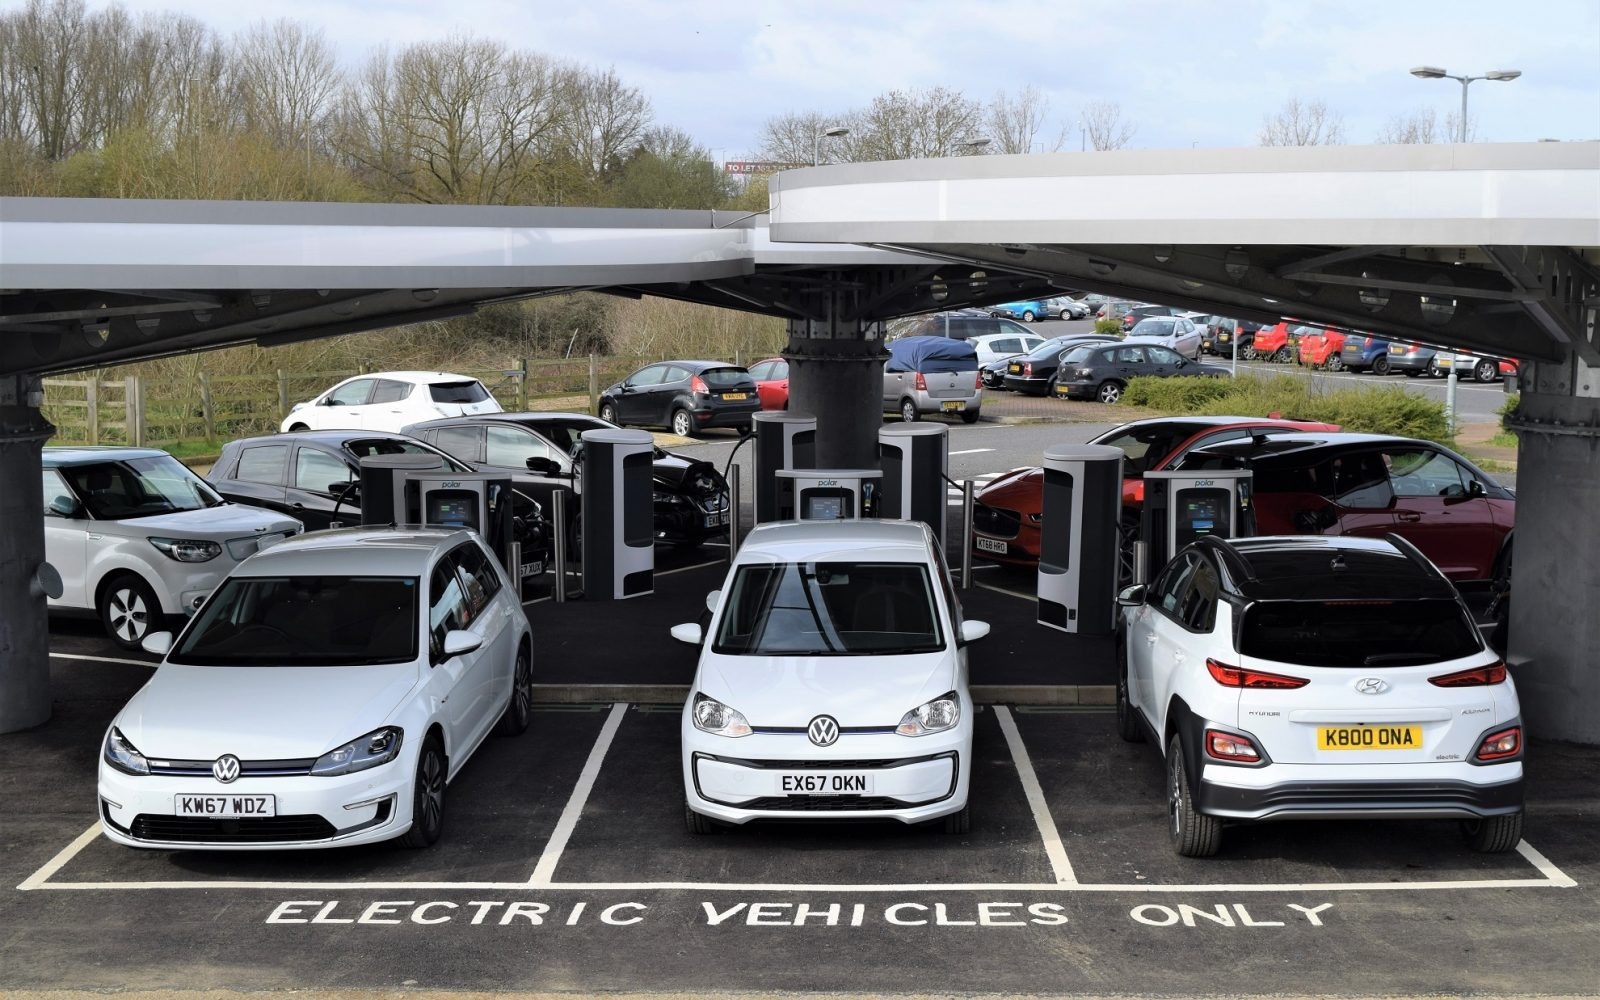 A rapid charging hub owned and operated by BP Chargemaster. Image: BP Chargemaster.